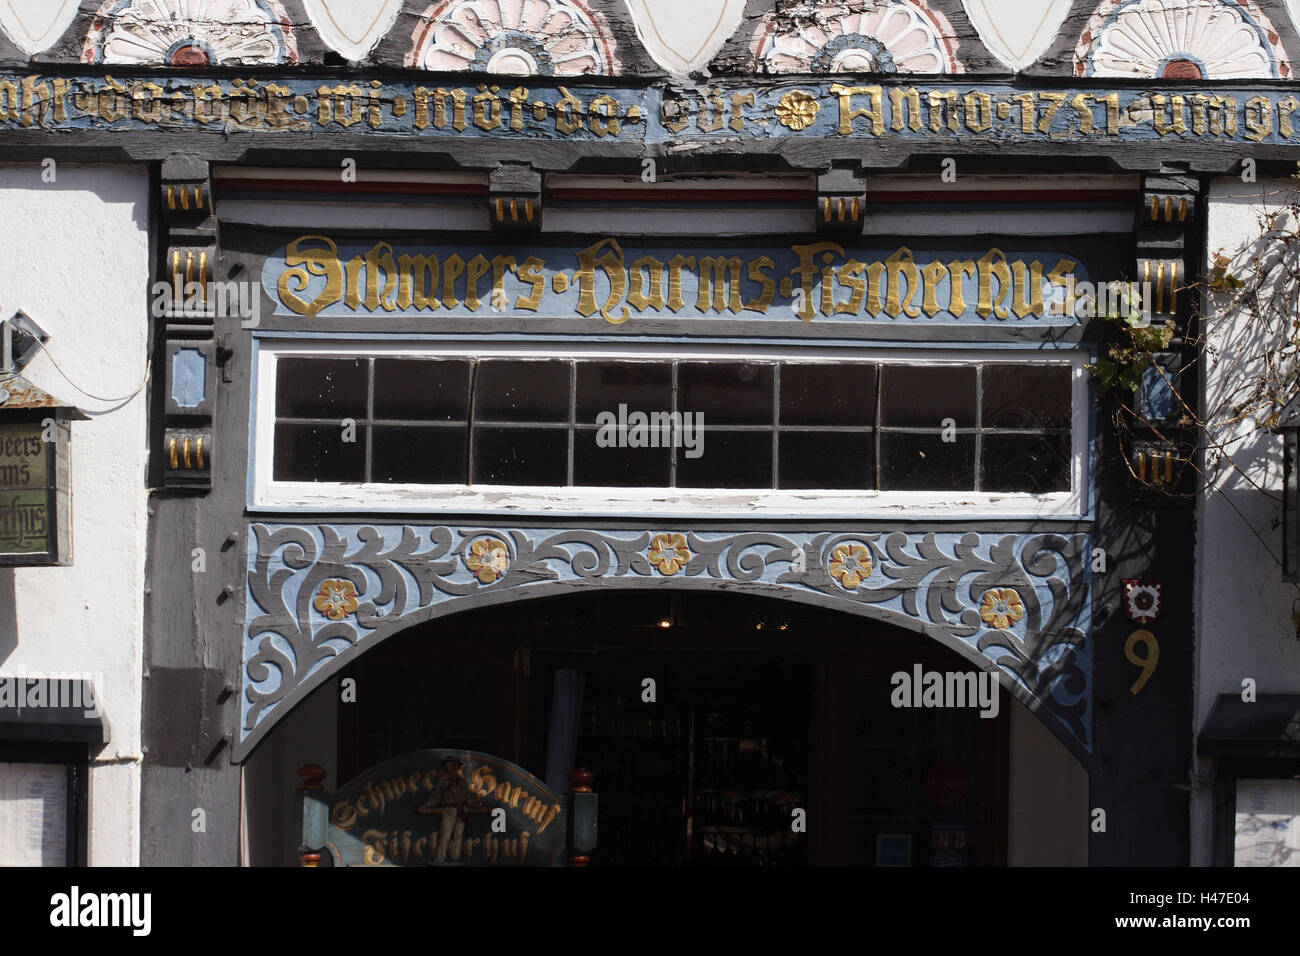 Germany, Lower Saxony, Steinhude, half-timbered house, facade, detail, city centre, house, building, half-timbered - Stock Image